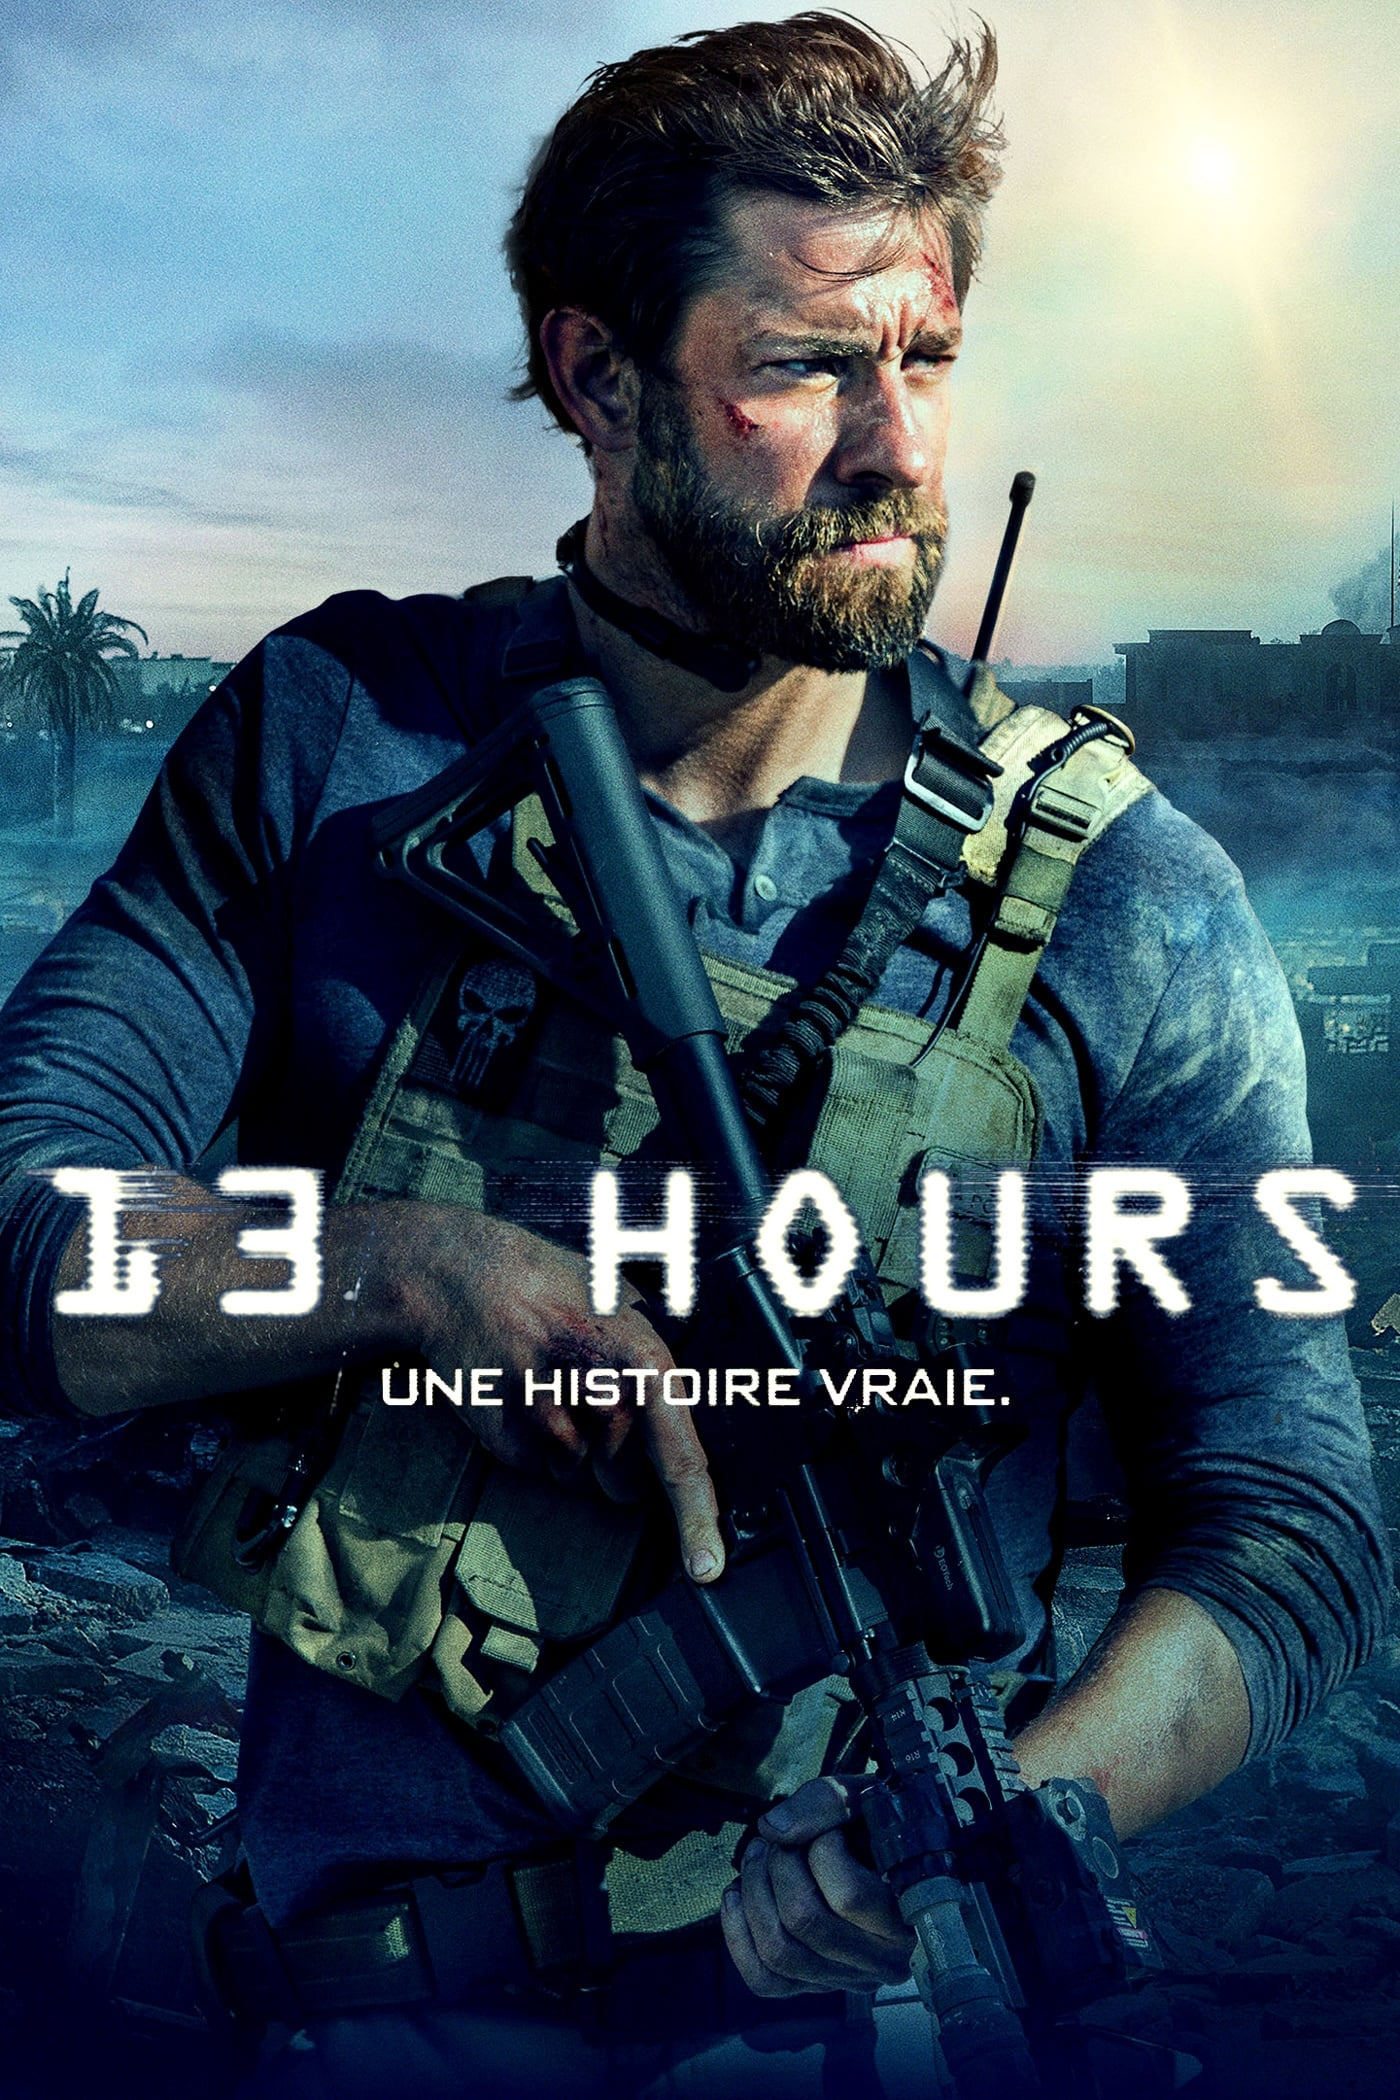 Film 13 hours 2016 en streaming vf complet for Film chambra 13 streaming